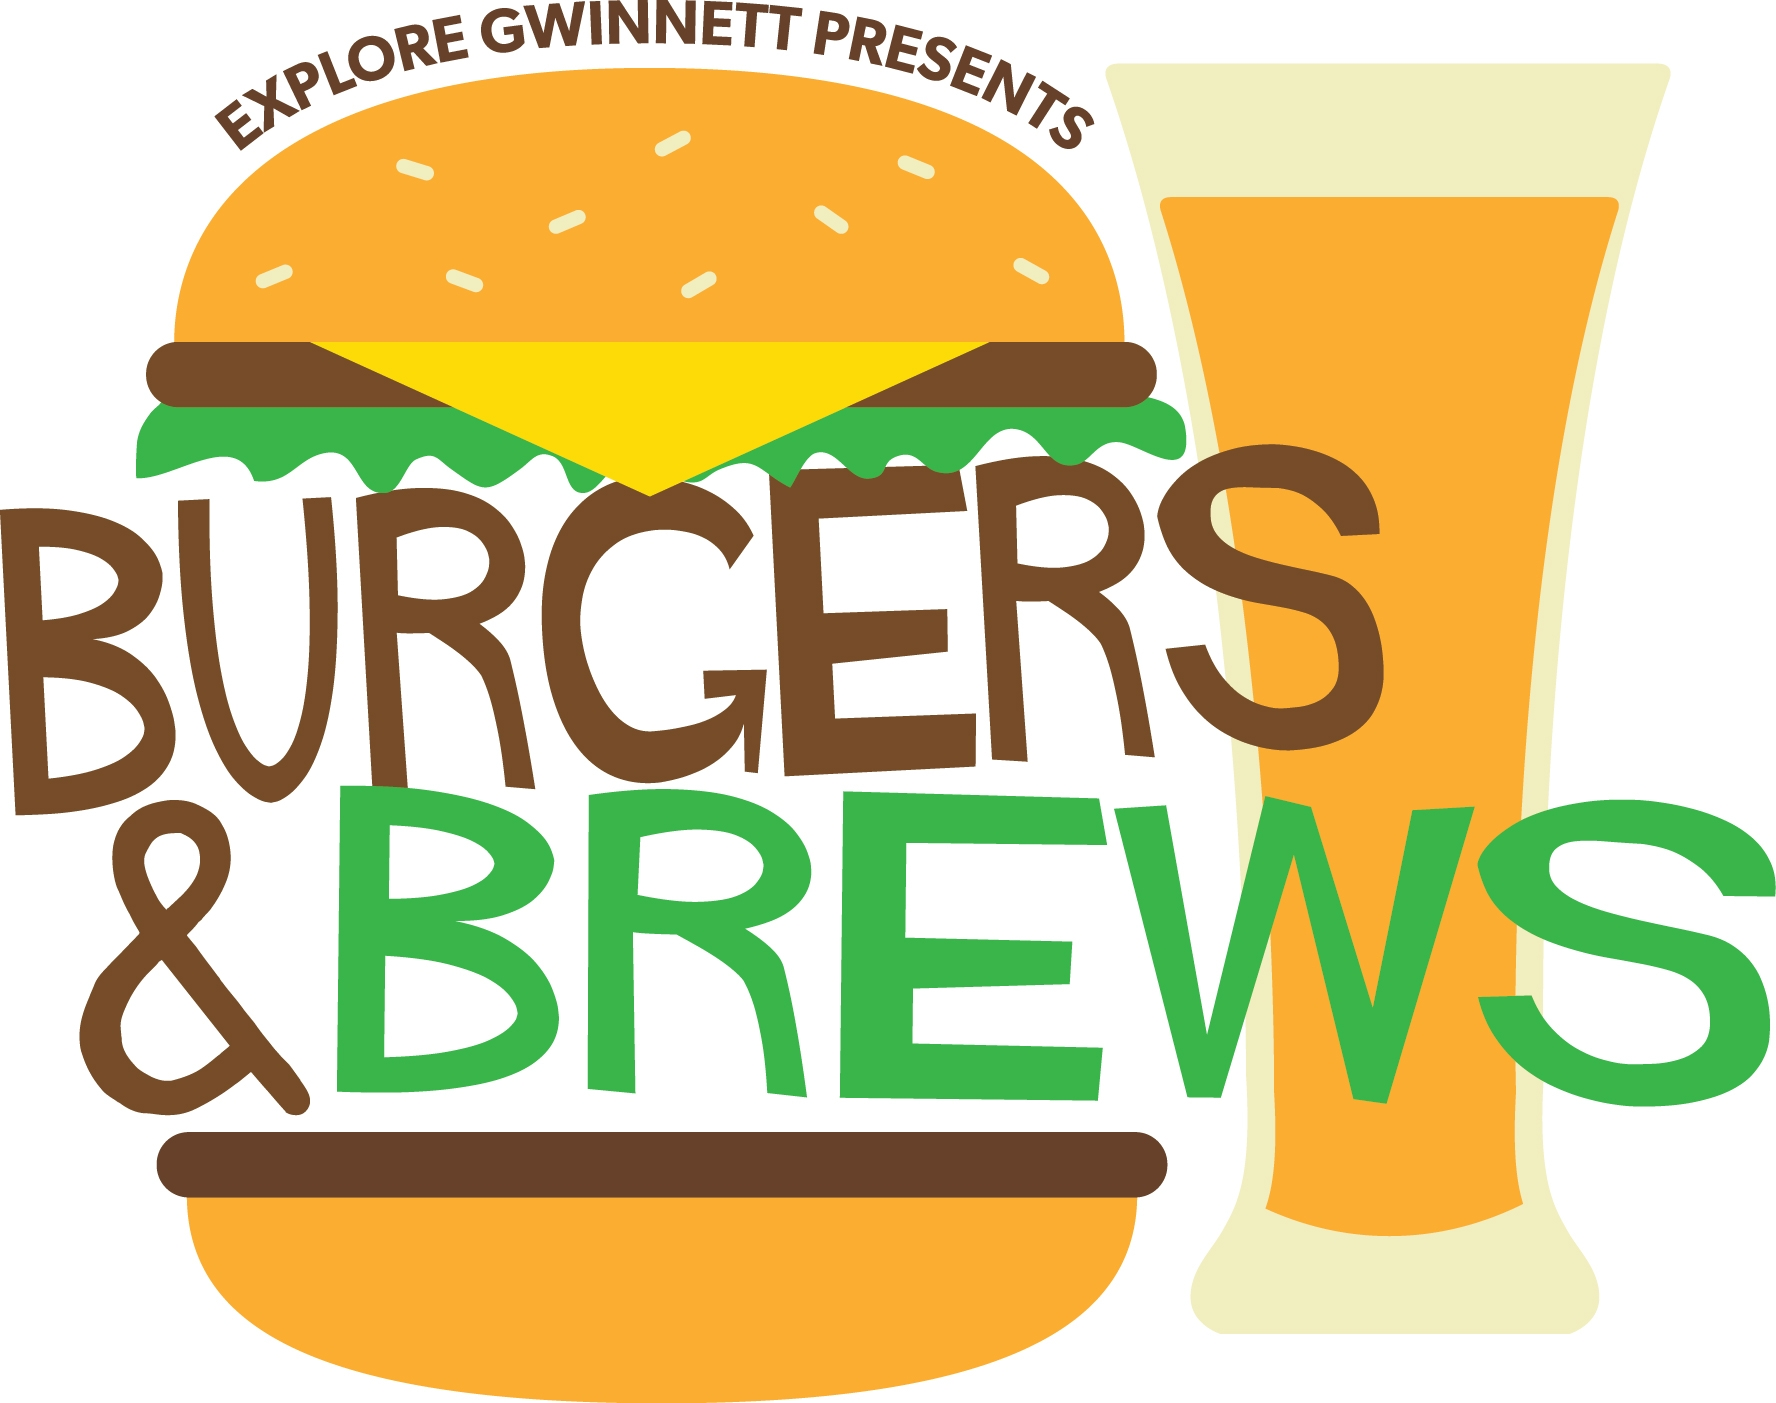 1776x1403 Burger And Beer Clipart Amp Burger And Beer Clip Art Images